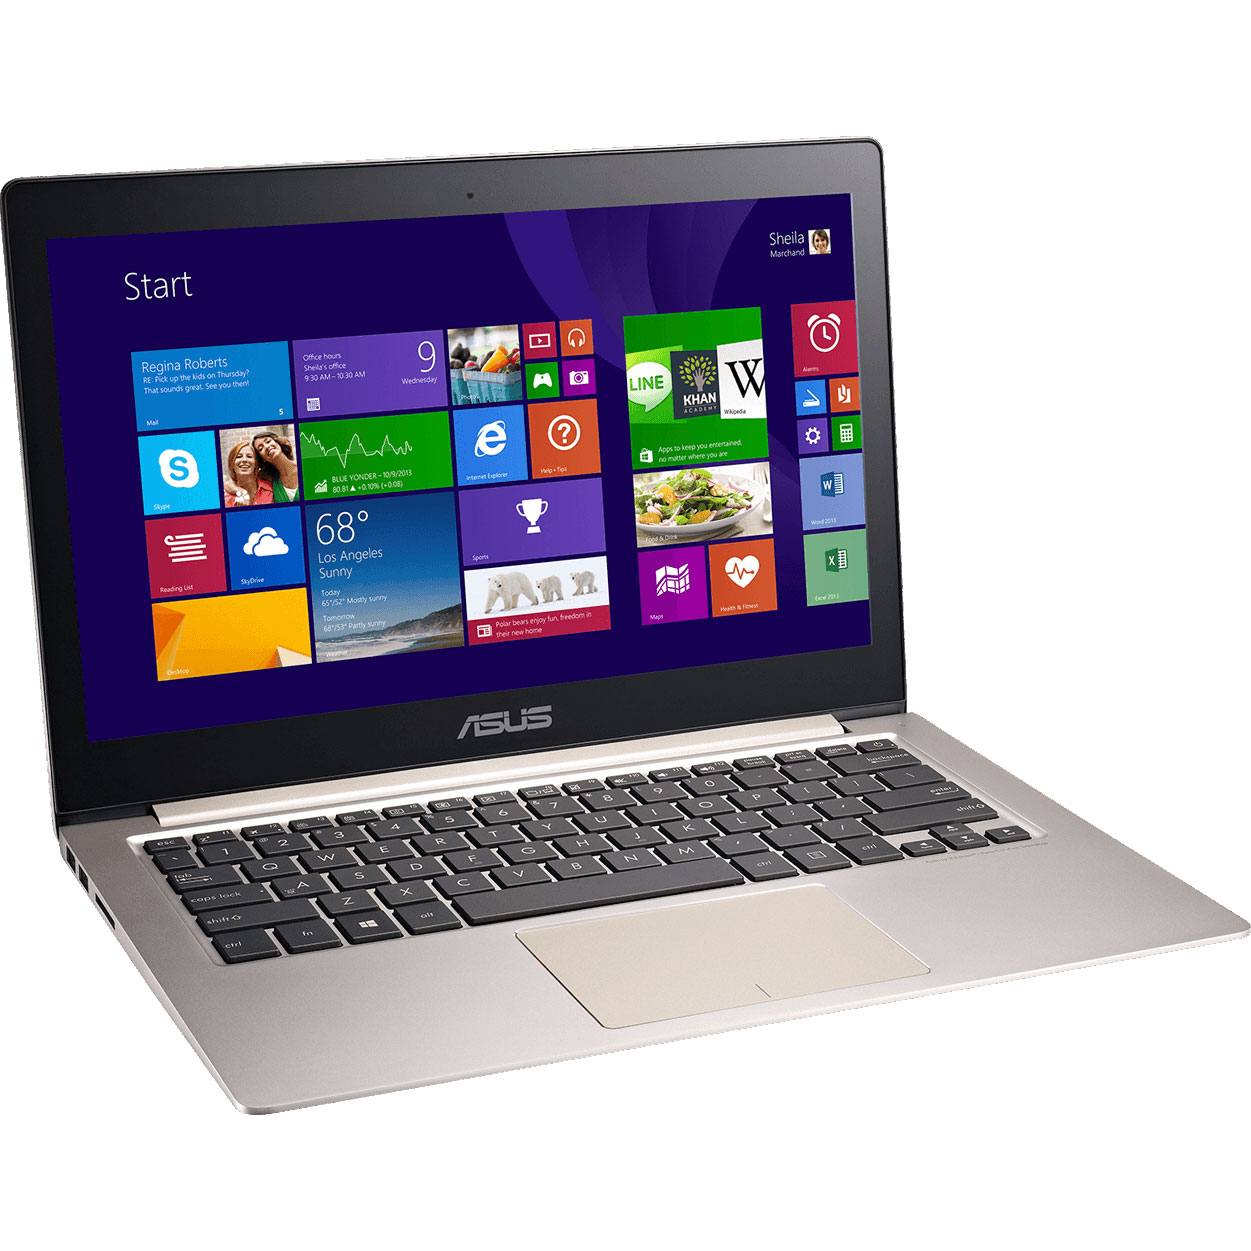 "PC portable ASUS Zenbook UX303LN-R4200H Intel Core i7-4510U 8 Go 500 Go 13.3"" LED NVIDIA GeForce 840M Wi-Fi N/Bluetooth Webcam Windows 8.1 64 bits (garantie constructeur 1 an)"